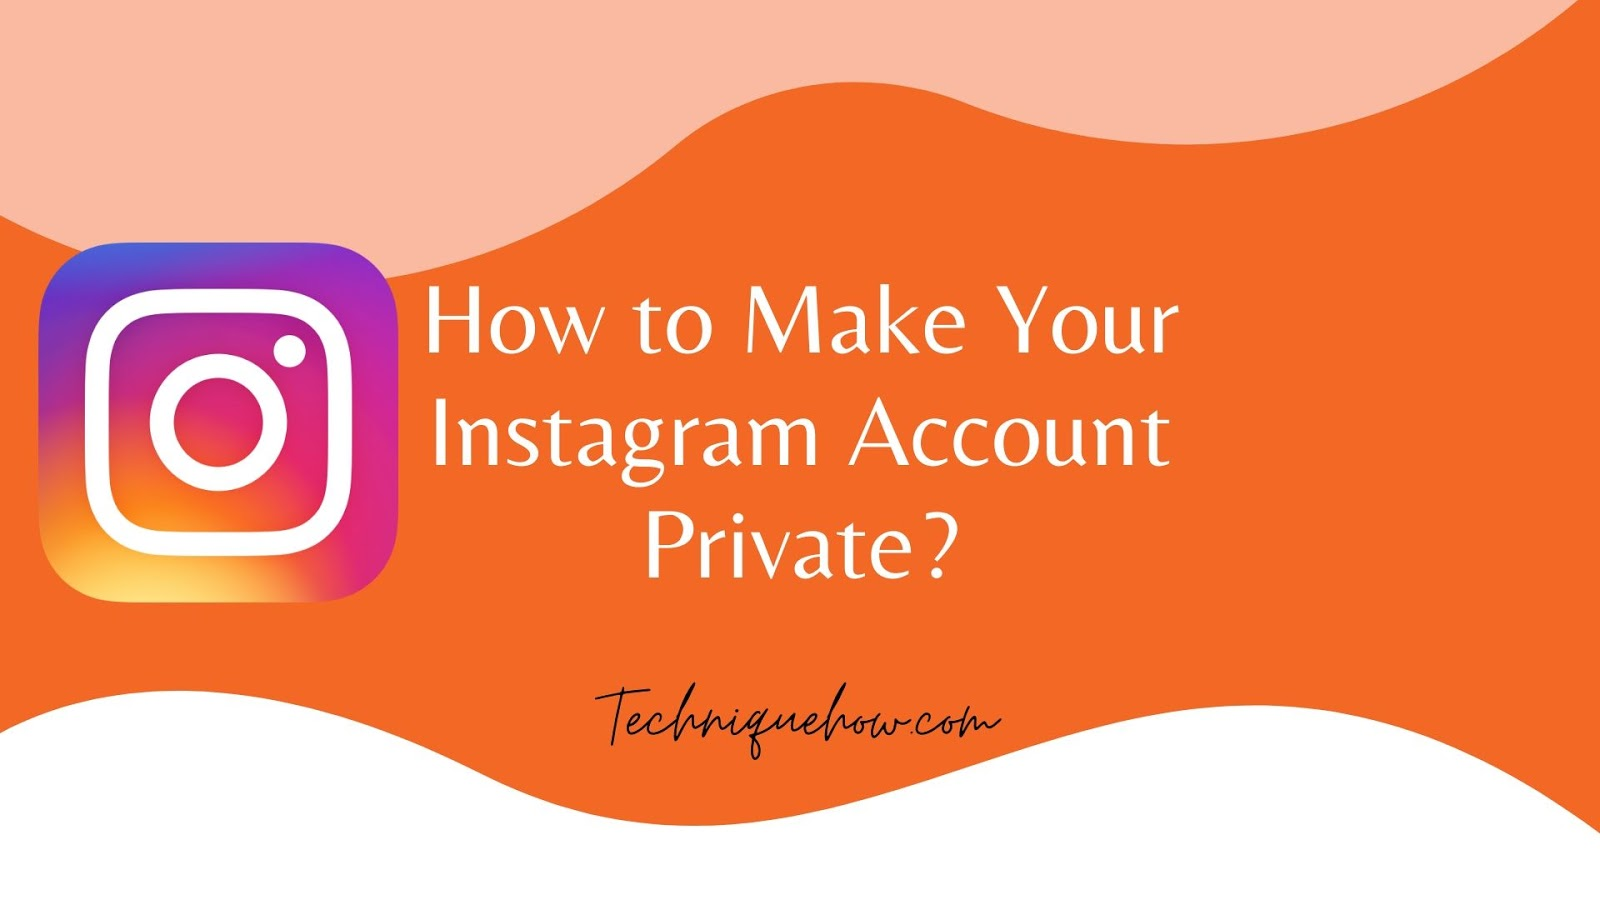 Make Your Instagram Account Private